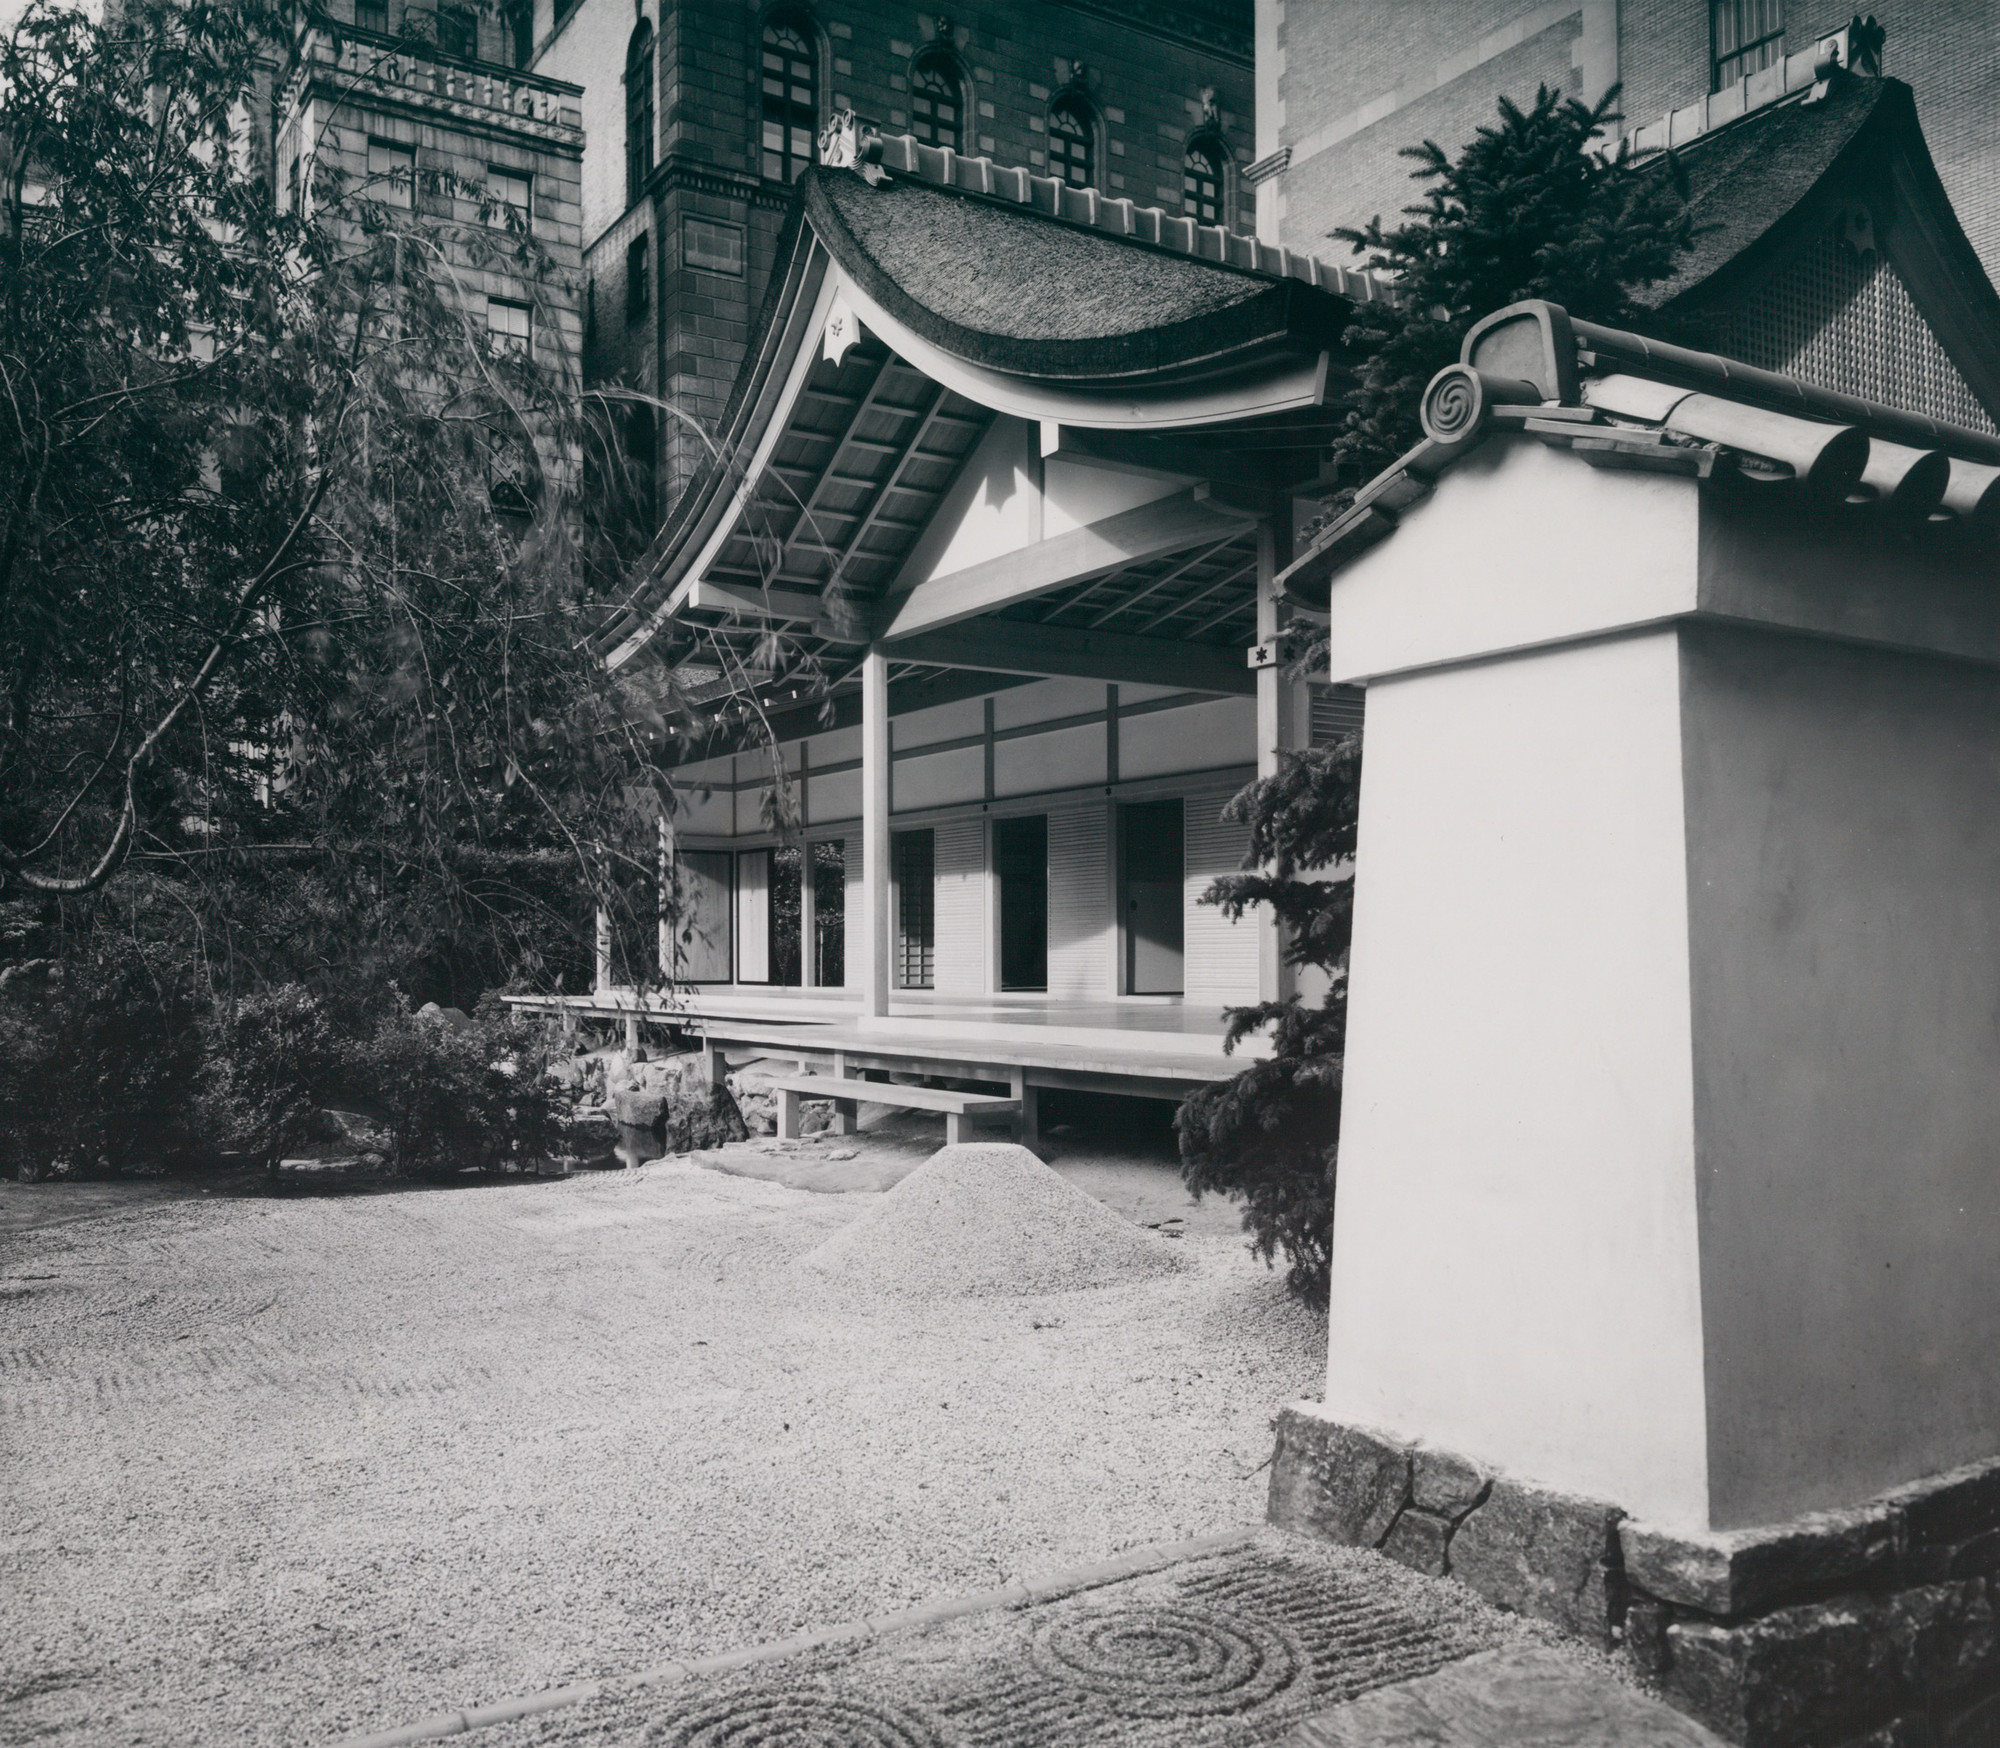 Installation view of Japanese Exhibition House at The Museum of Modern Art, New York